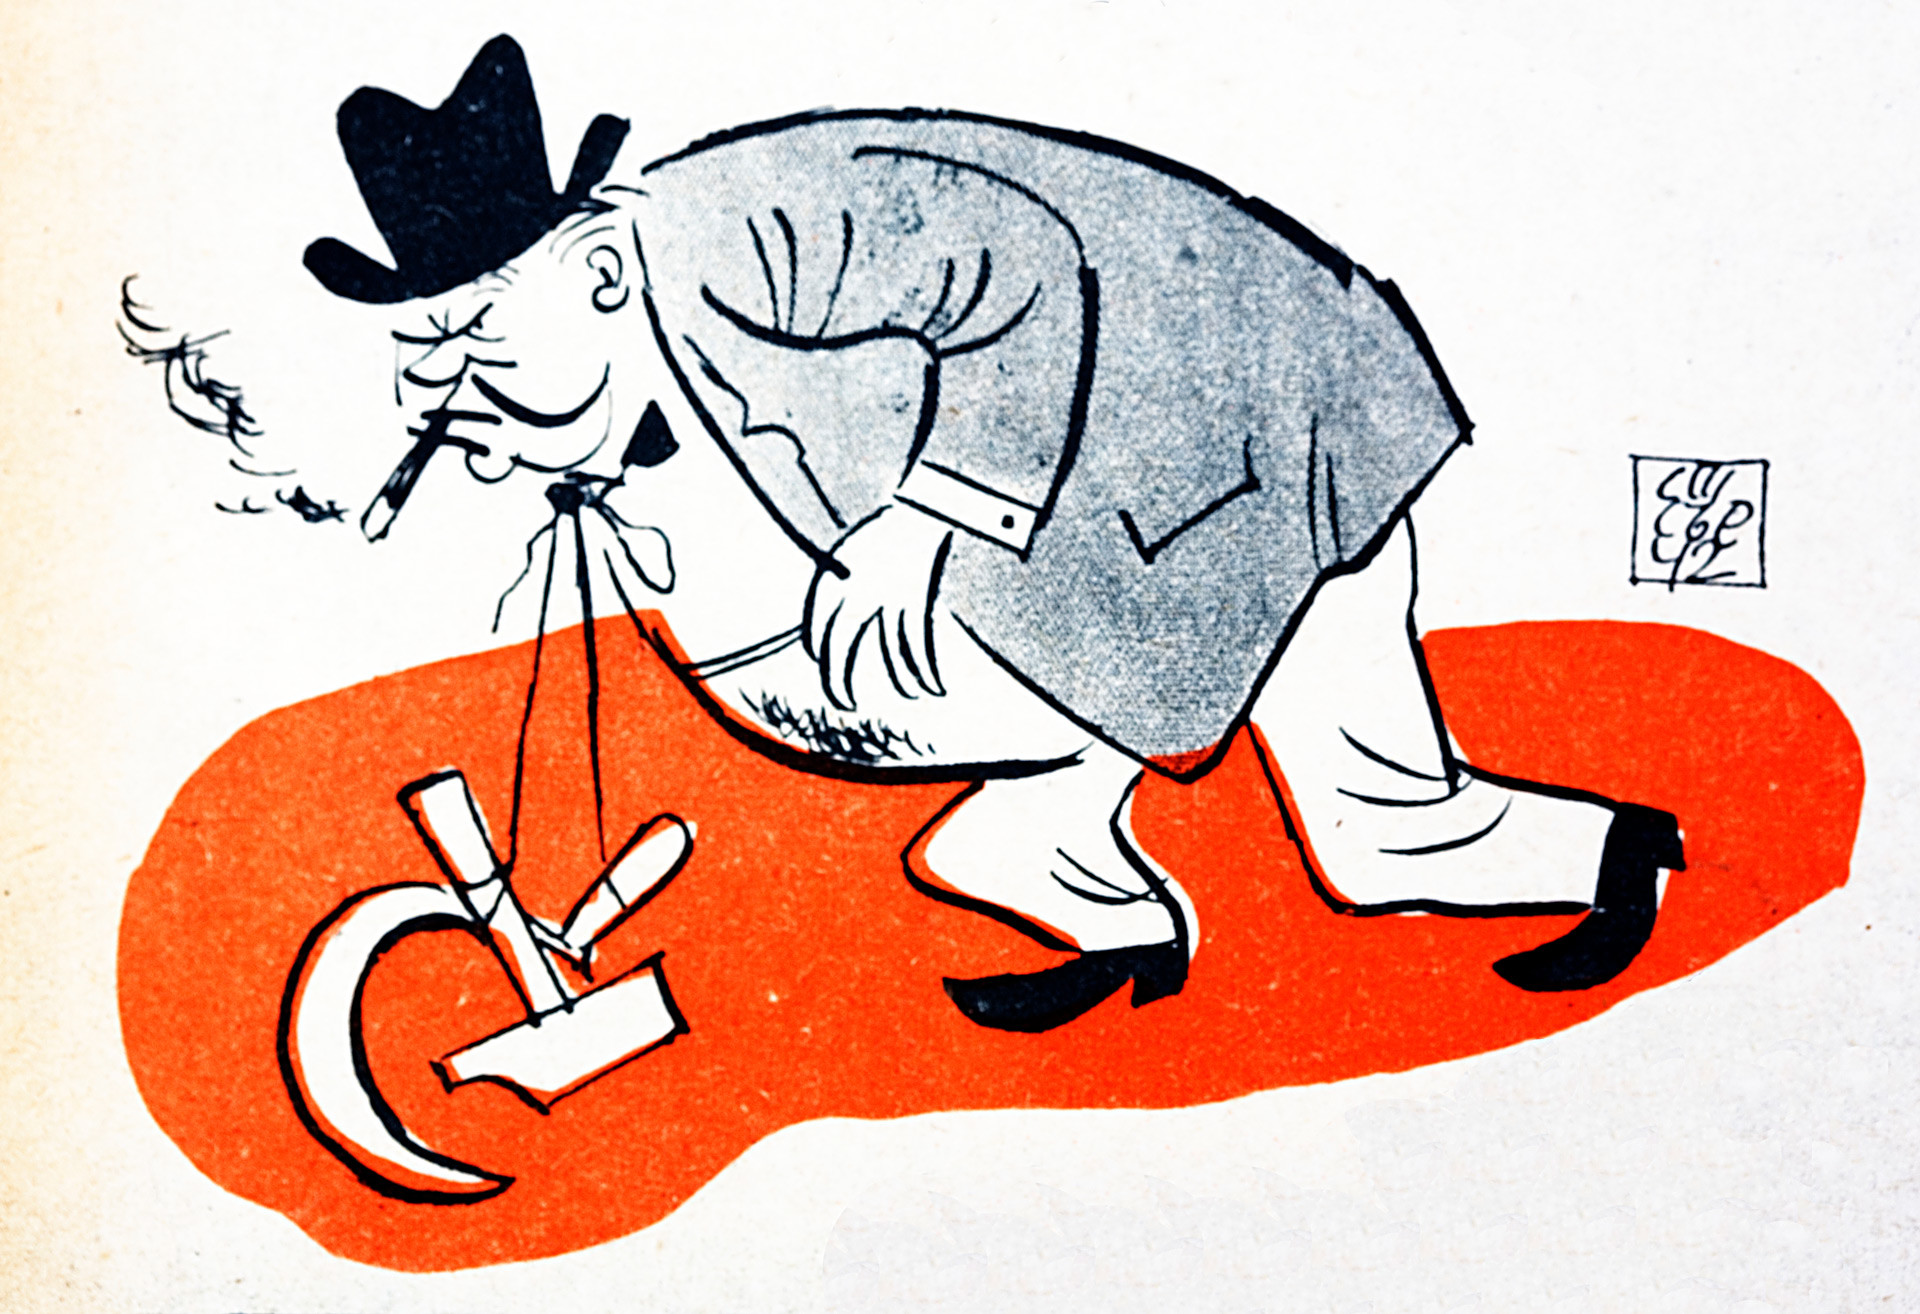 Pro-Nazi caricature showing Winston Churchill weighed down by the Communist hammer and sickle, symbolizing his alliance with Russia.